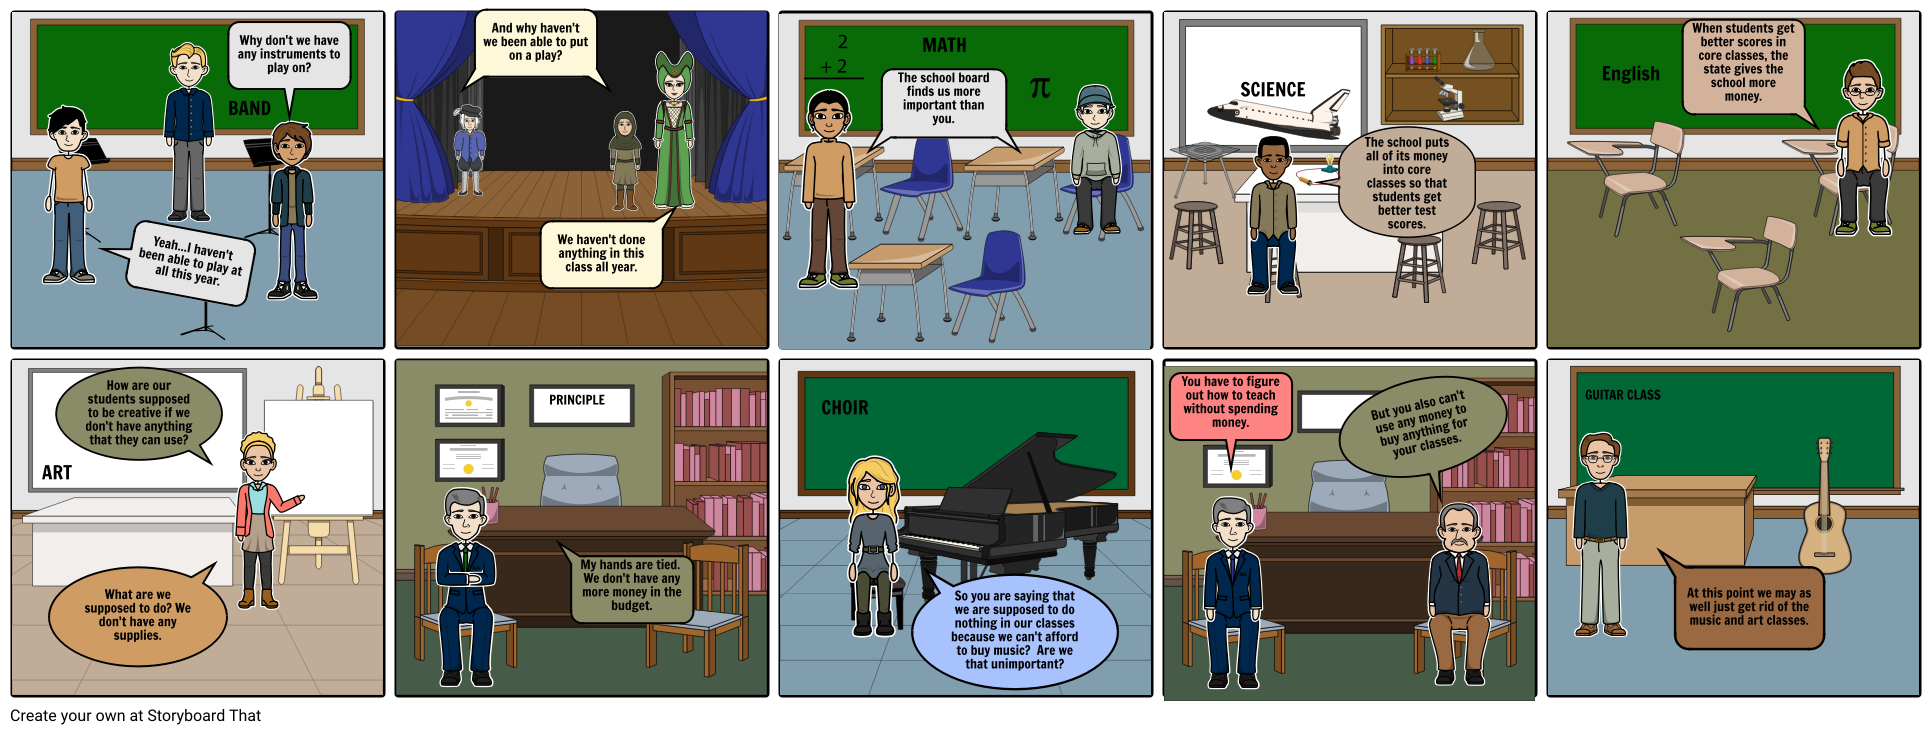 English Satire Project Storyboard By Zwalter0405